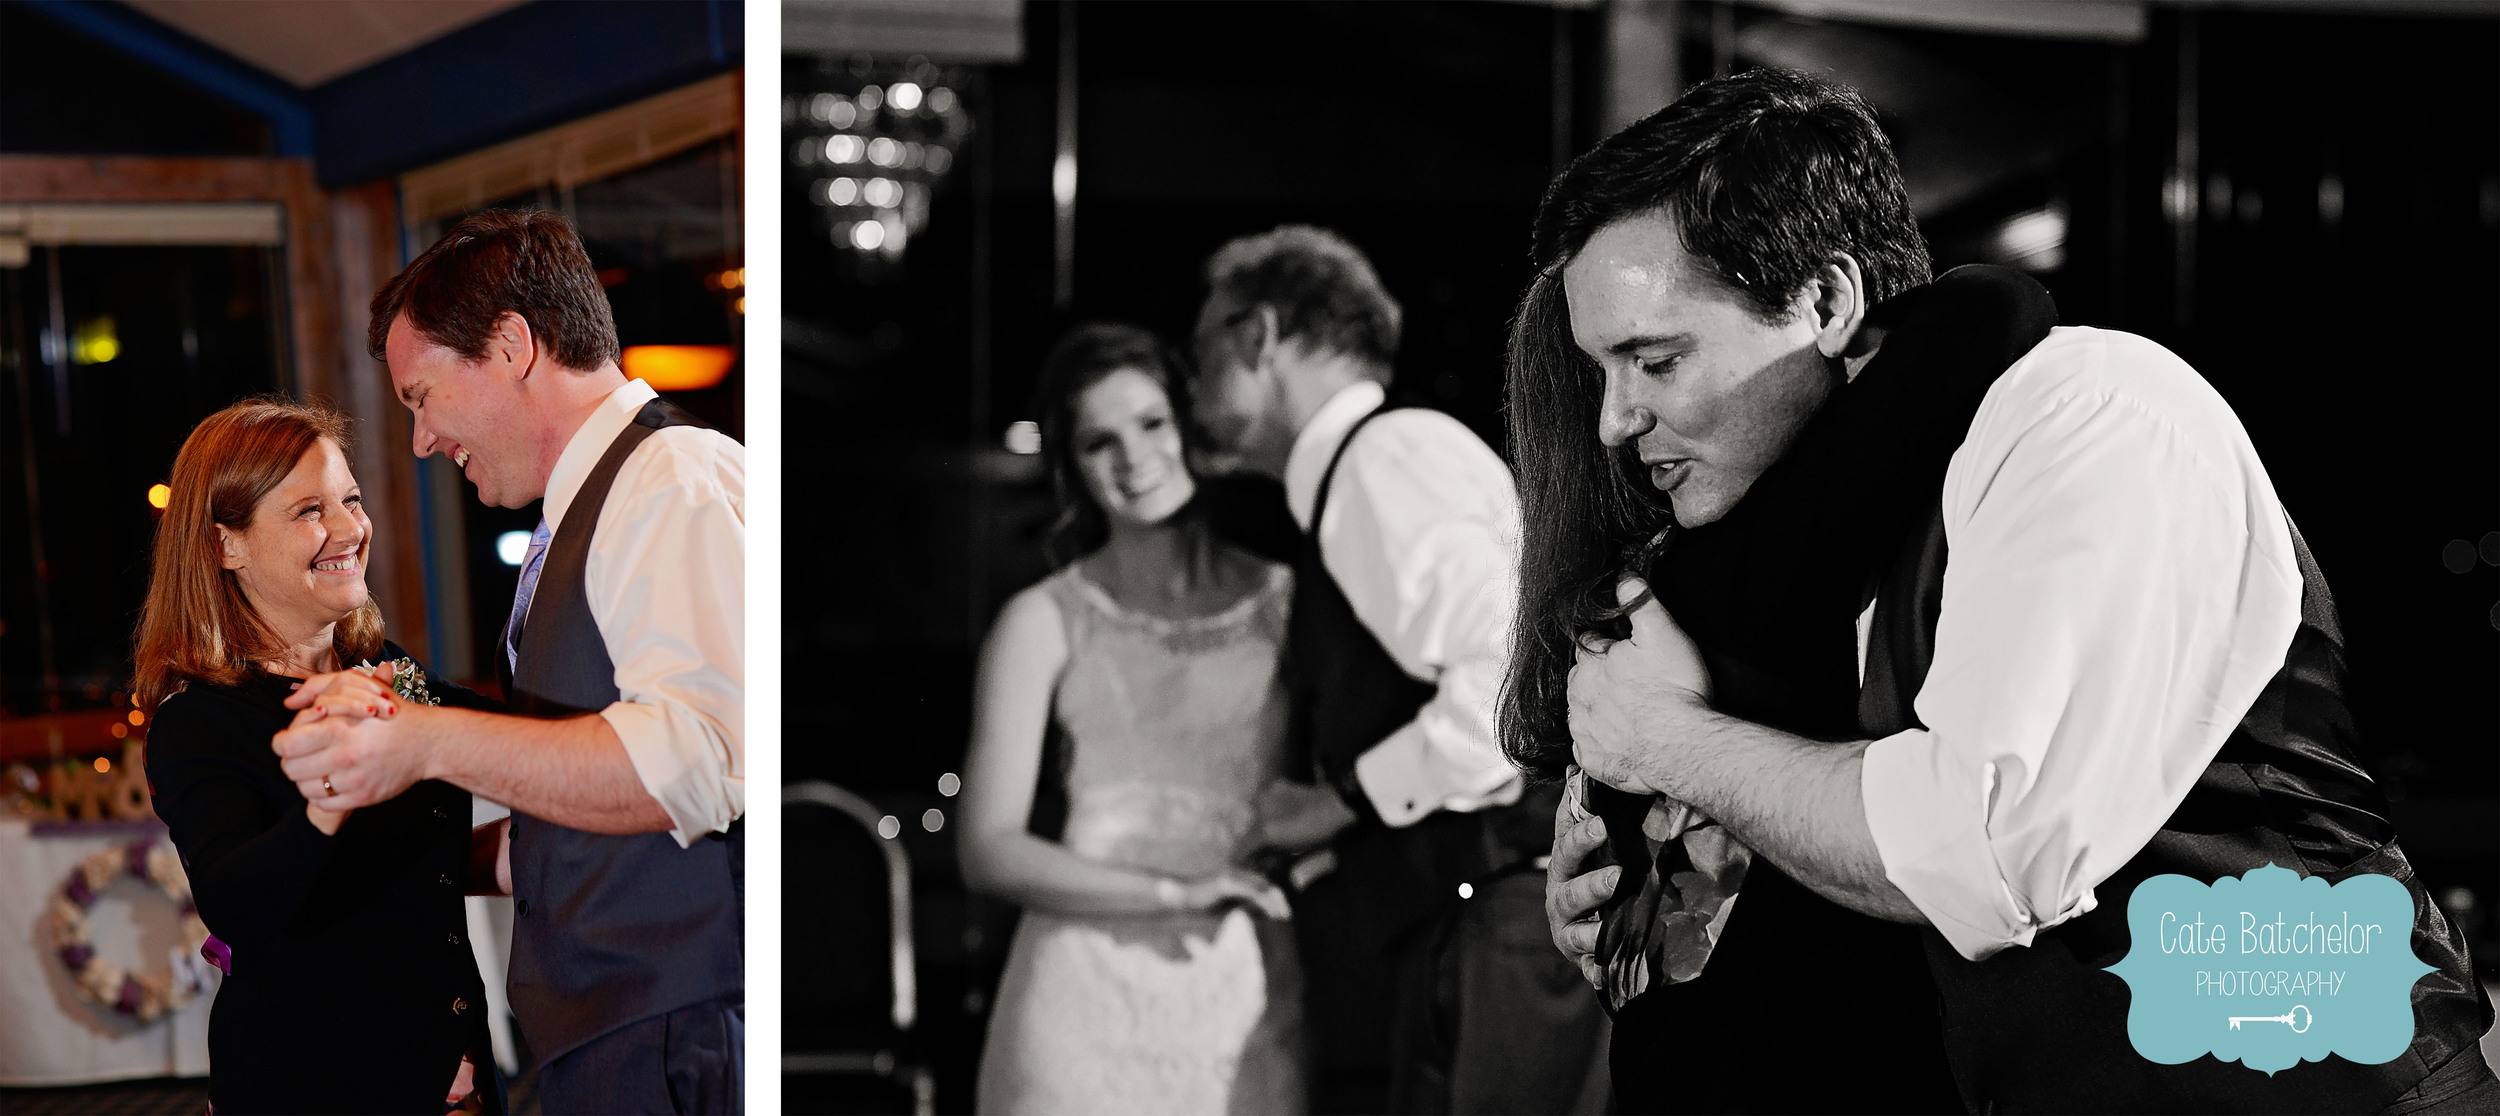 Andrew and his mom joined the dance as well.